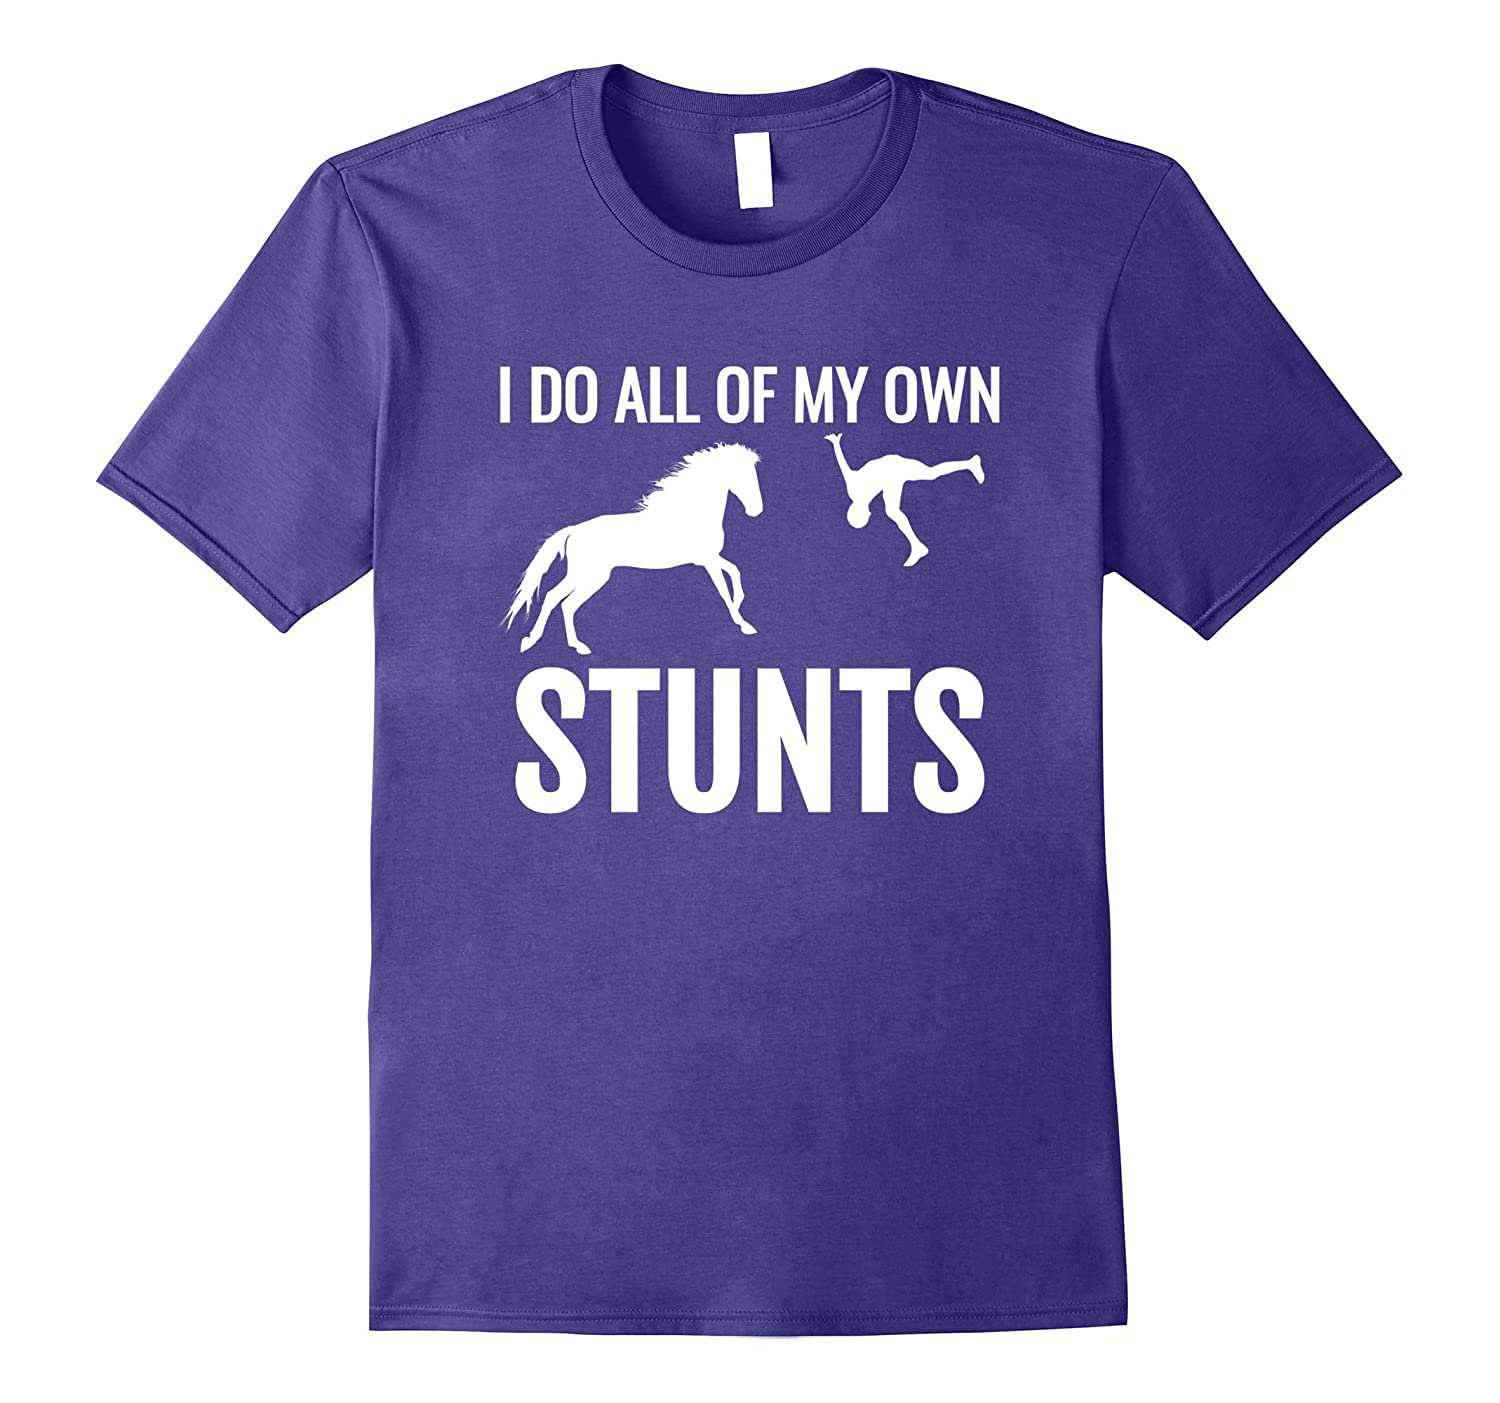 I do all of my own stunts equestrian funny gift Tee Shirt-CL